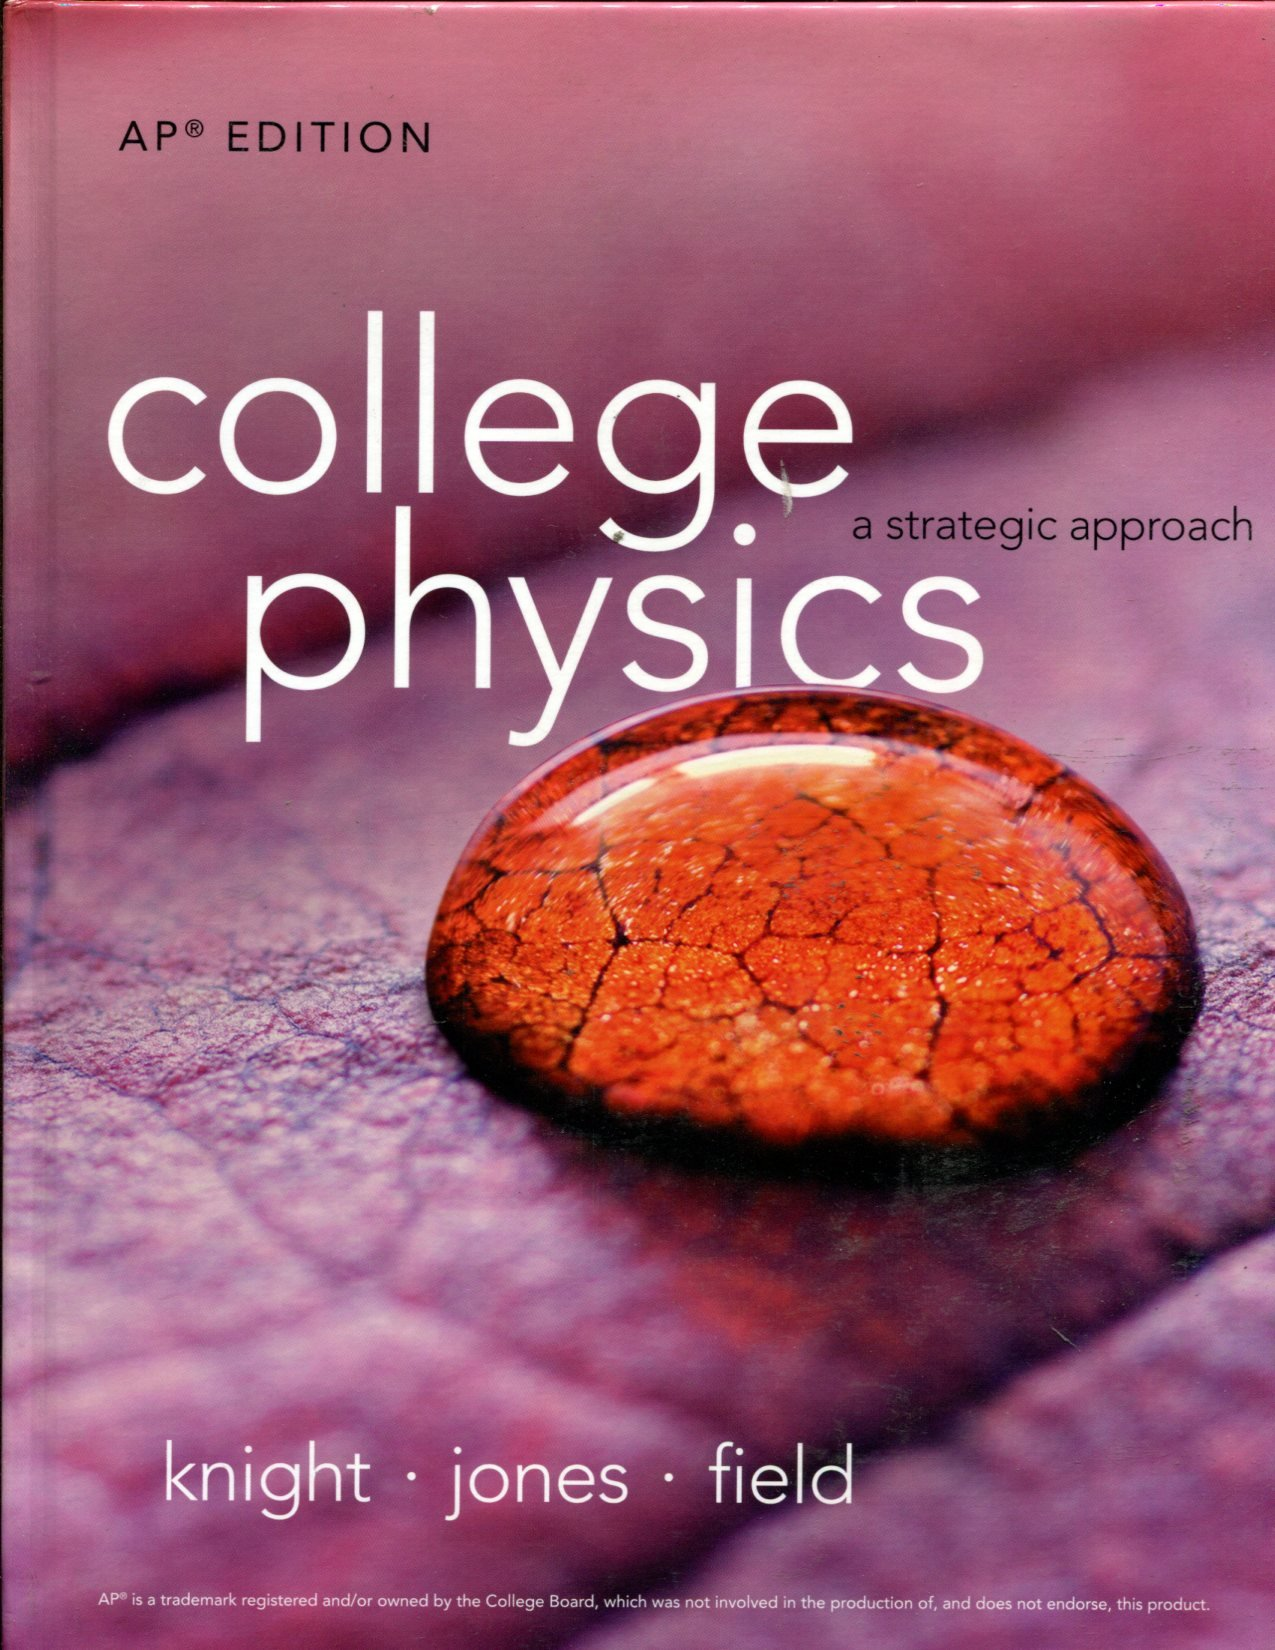 College Physics a strategic approach AP Edition: Knight